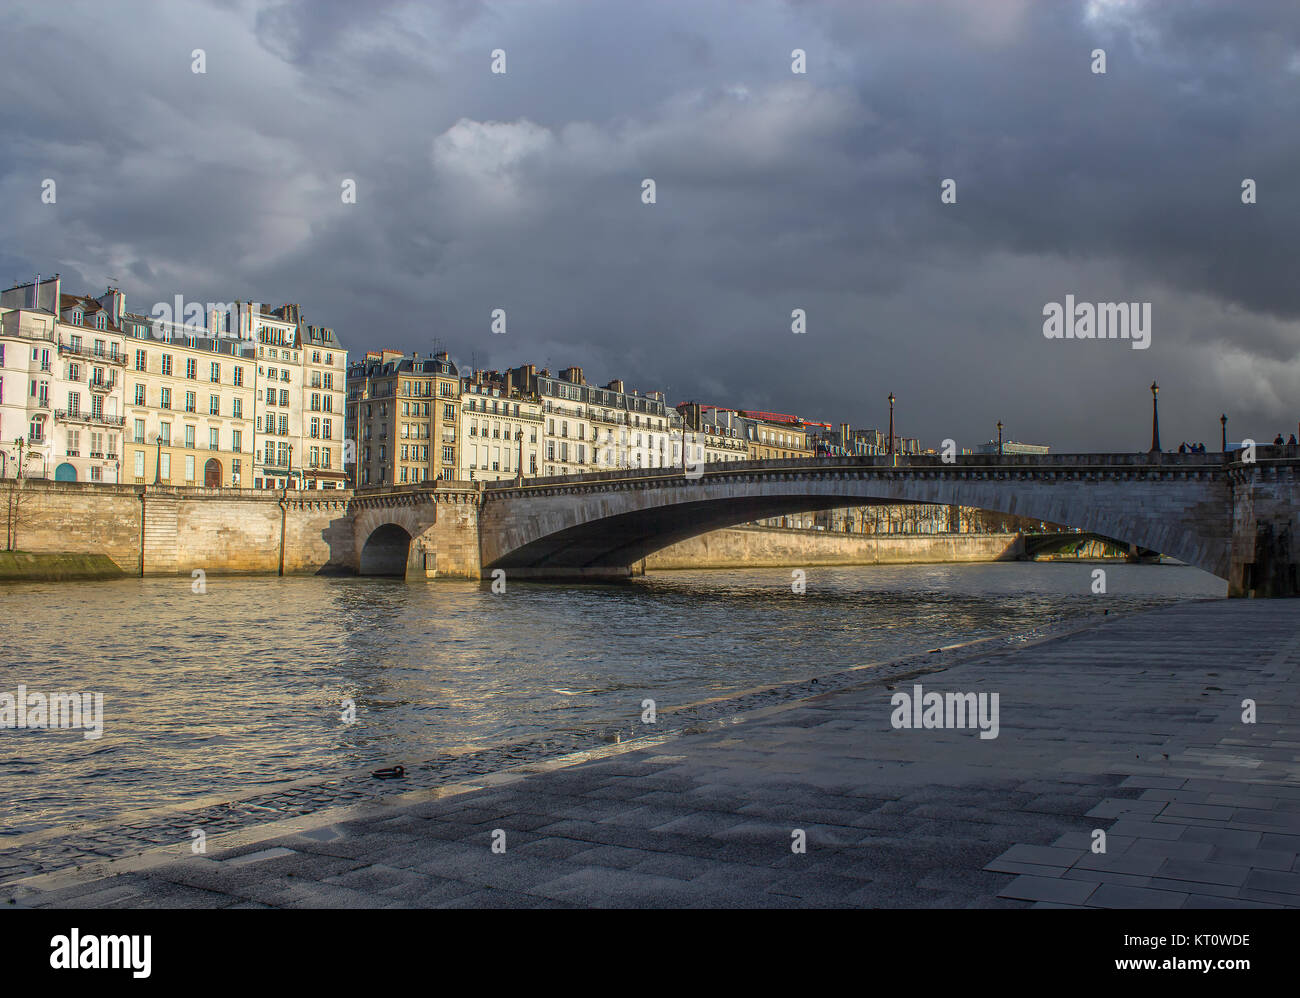 Sena river in Paris with storm aproaching - Stock Image